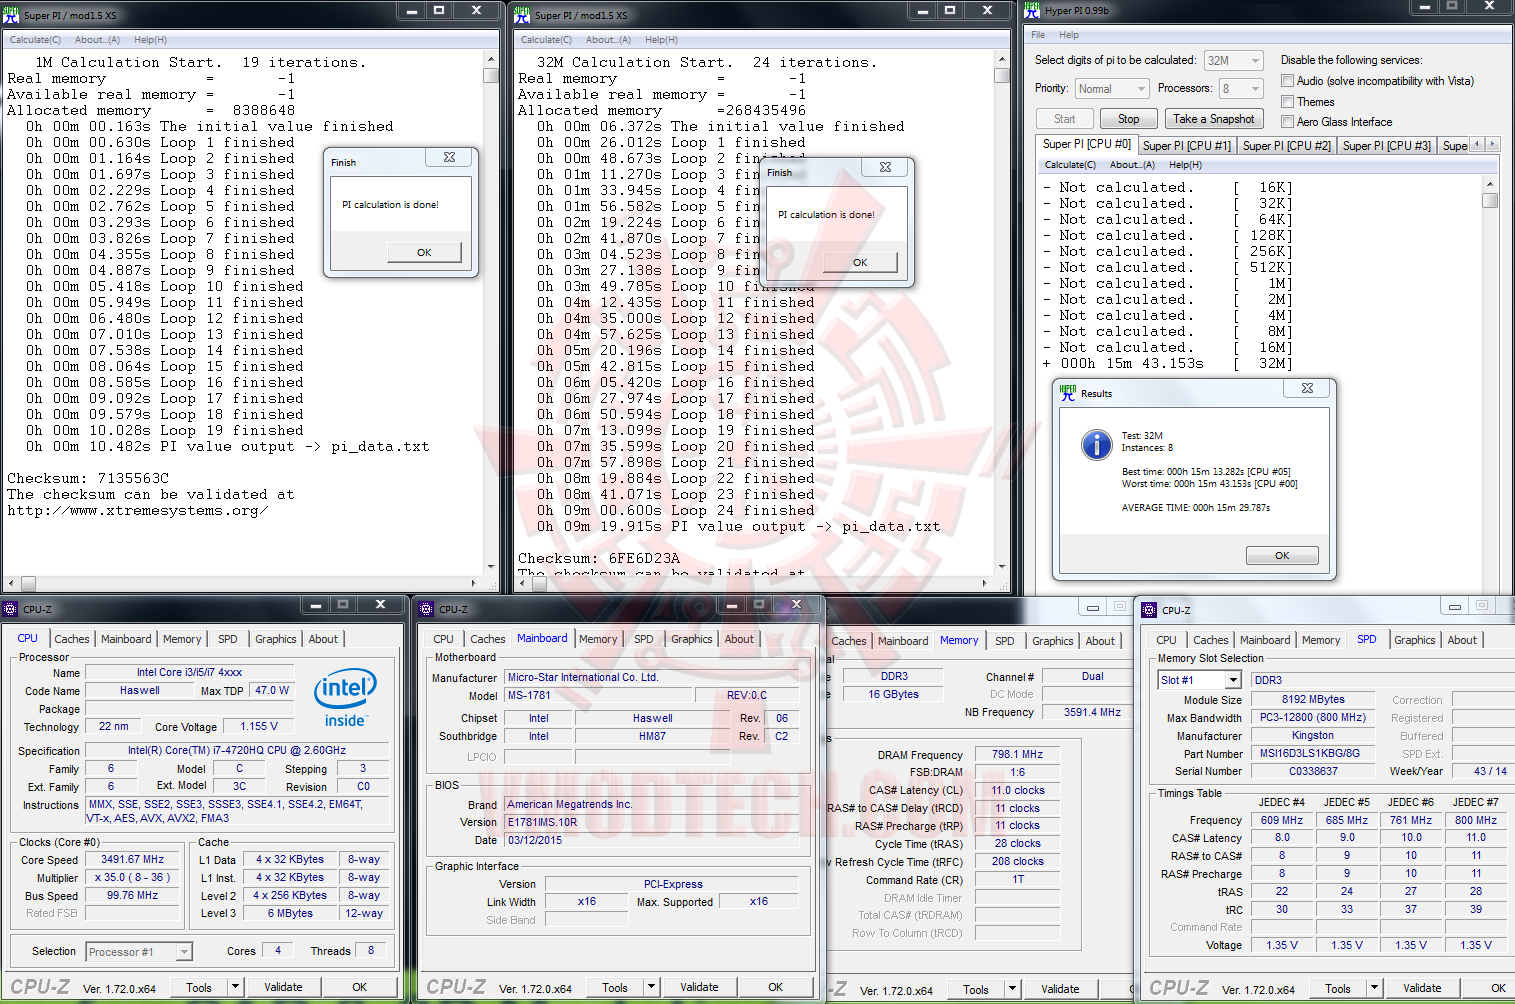 Pcmark 7 v1.0.4 win7 incl keygen and patch